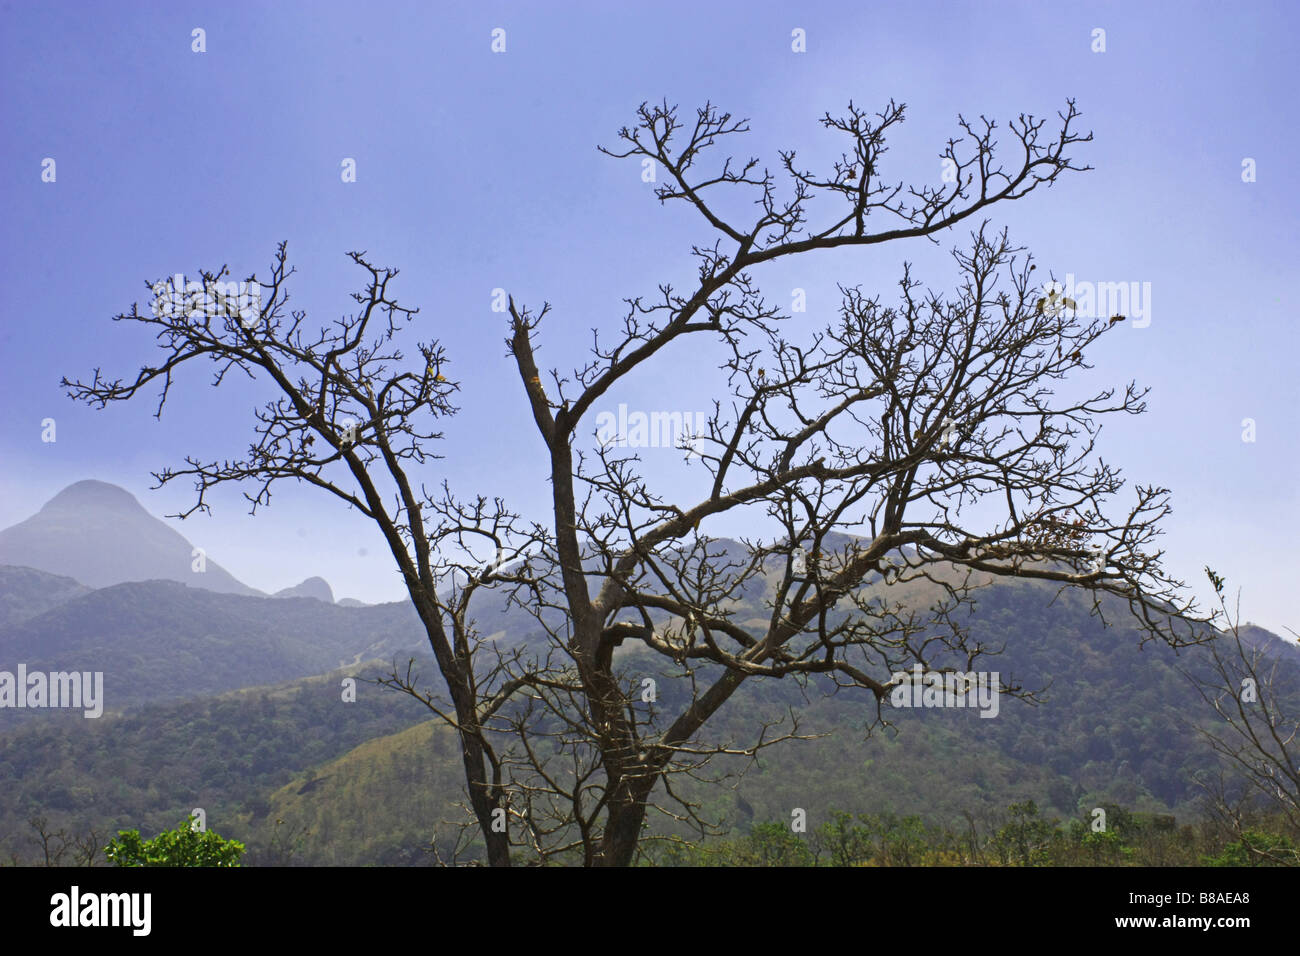 Landscape of a withered tree on a mountaineous background - Stock Image